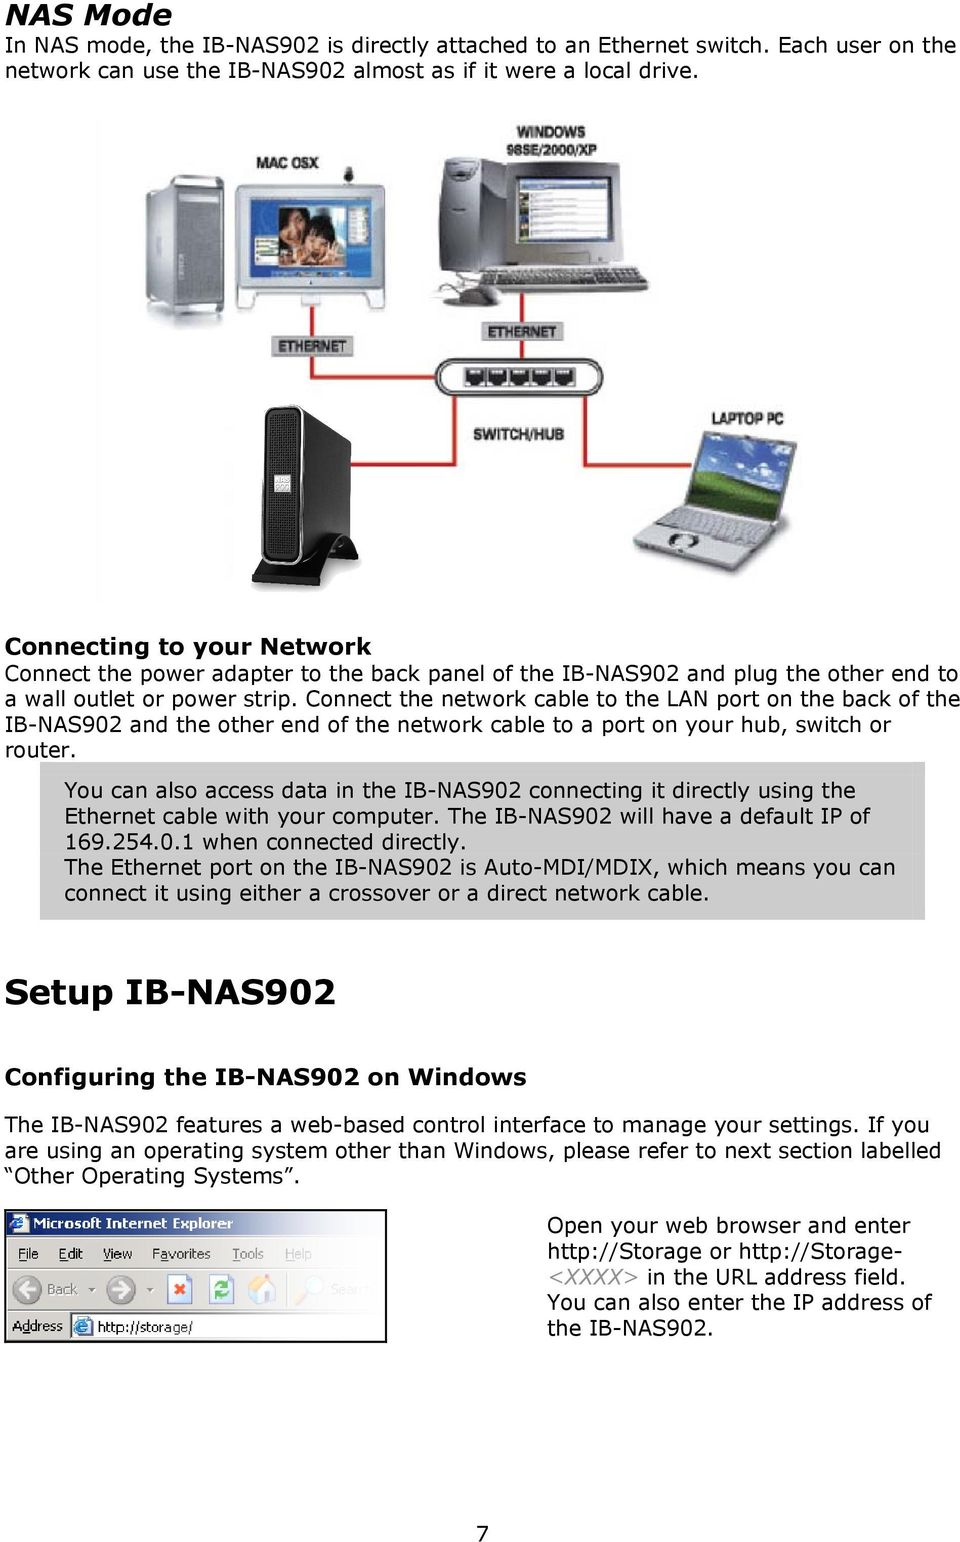 Connect the network cable to the LAN port on the back of the IB-NAS902 and the other end of the network cable to a port on your hub, switch or router.